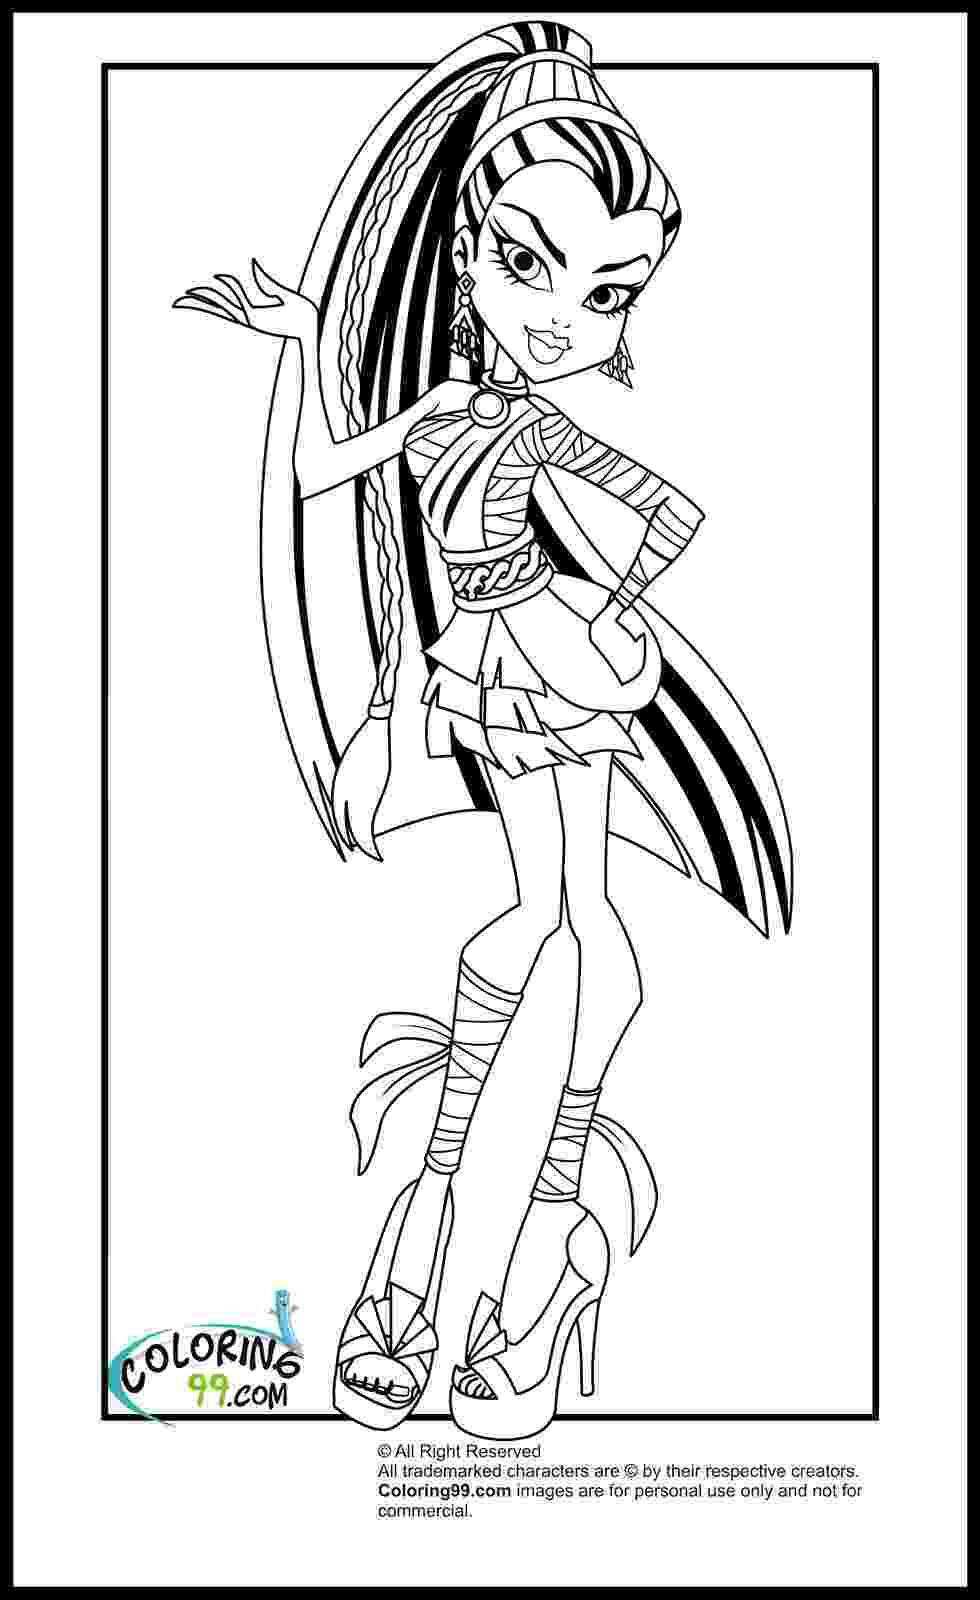 monster high colouring sheets top 27 monster high coloring pages for your little ones monster sheets colouring high